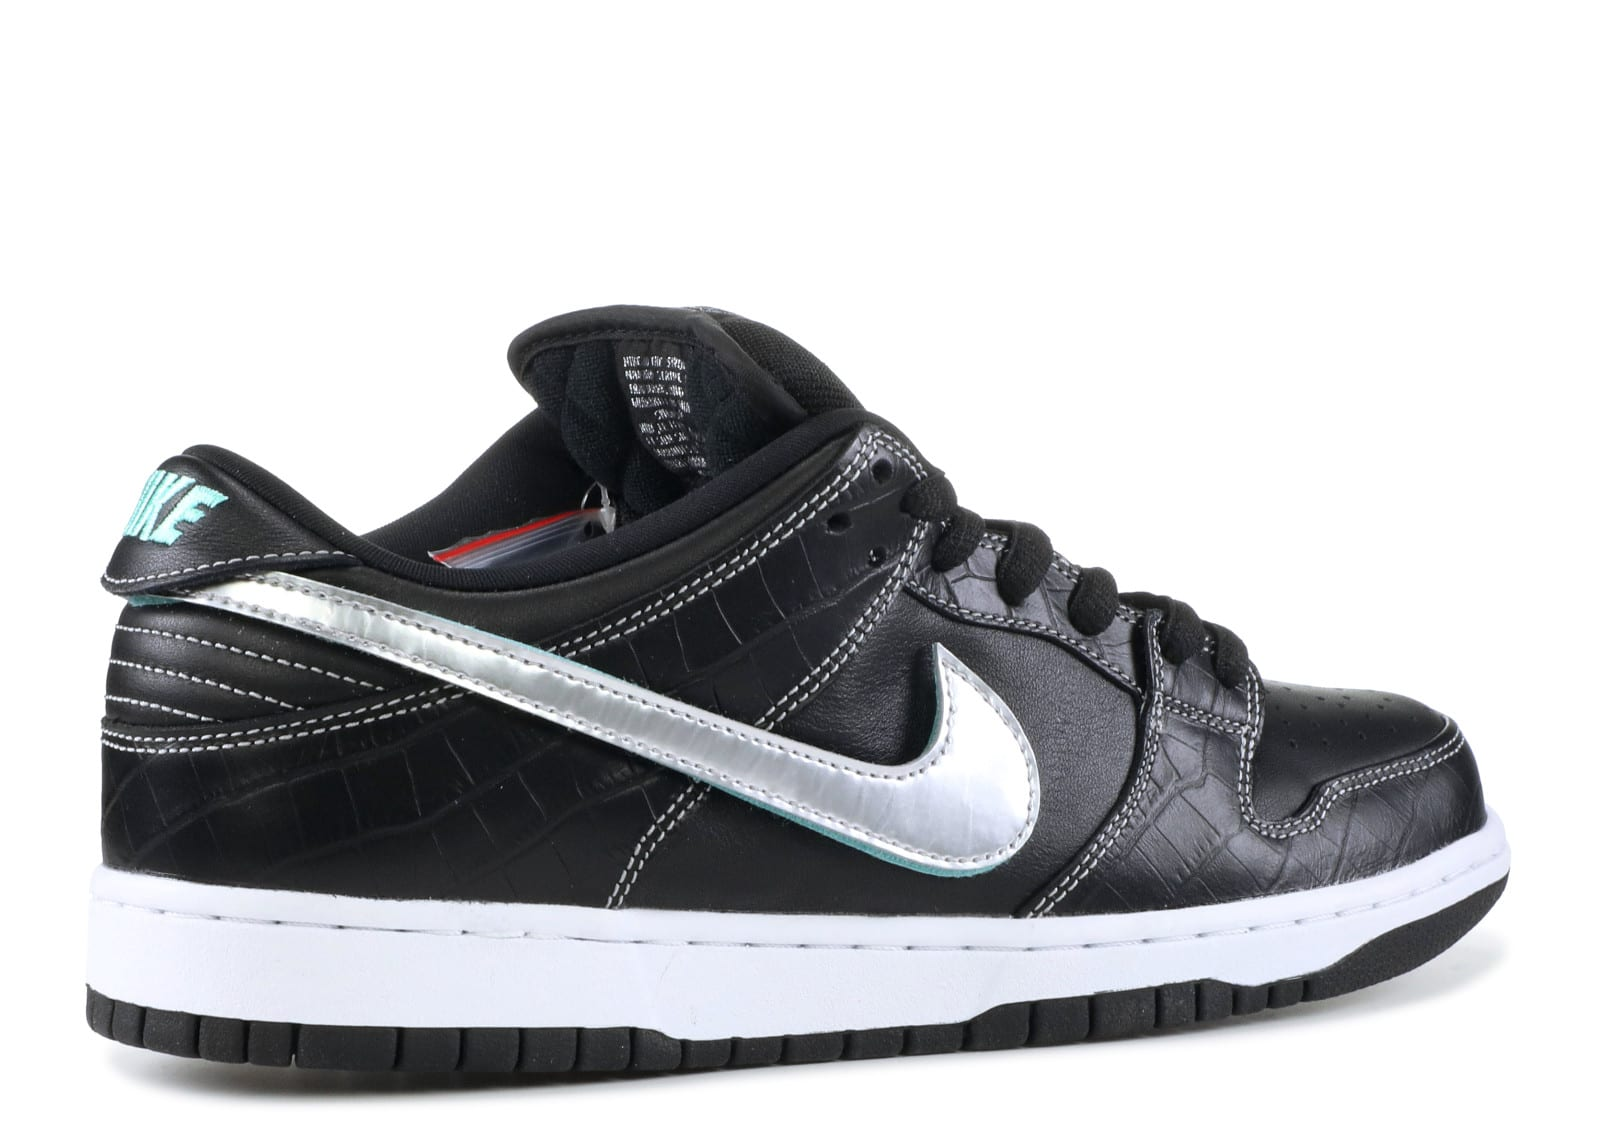 discount official shop buying new Nike SB Dunk Low Diamond Supply Co Black Diamond